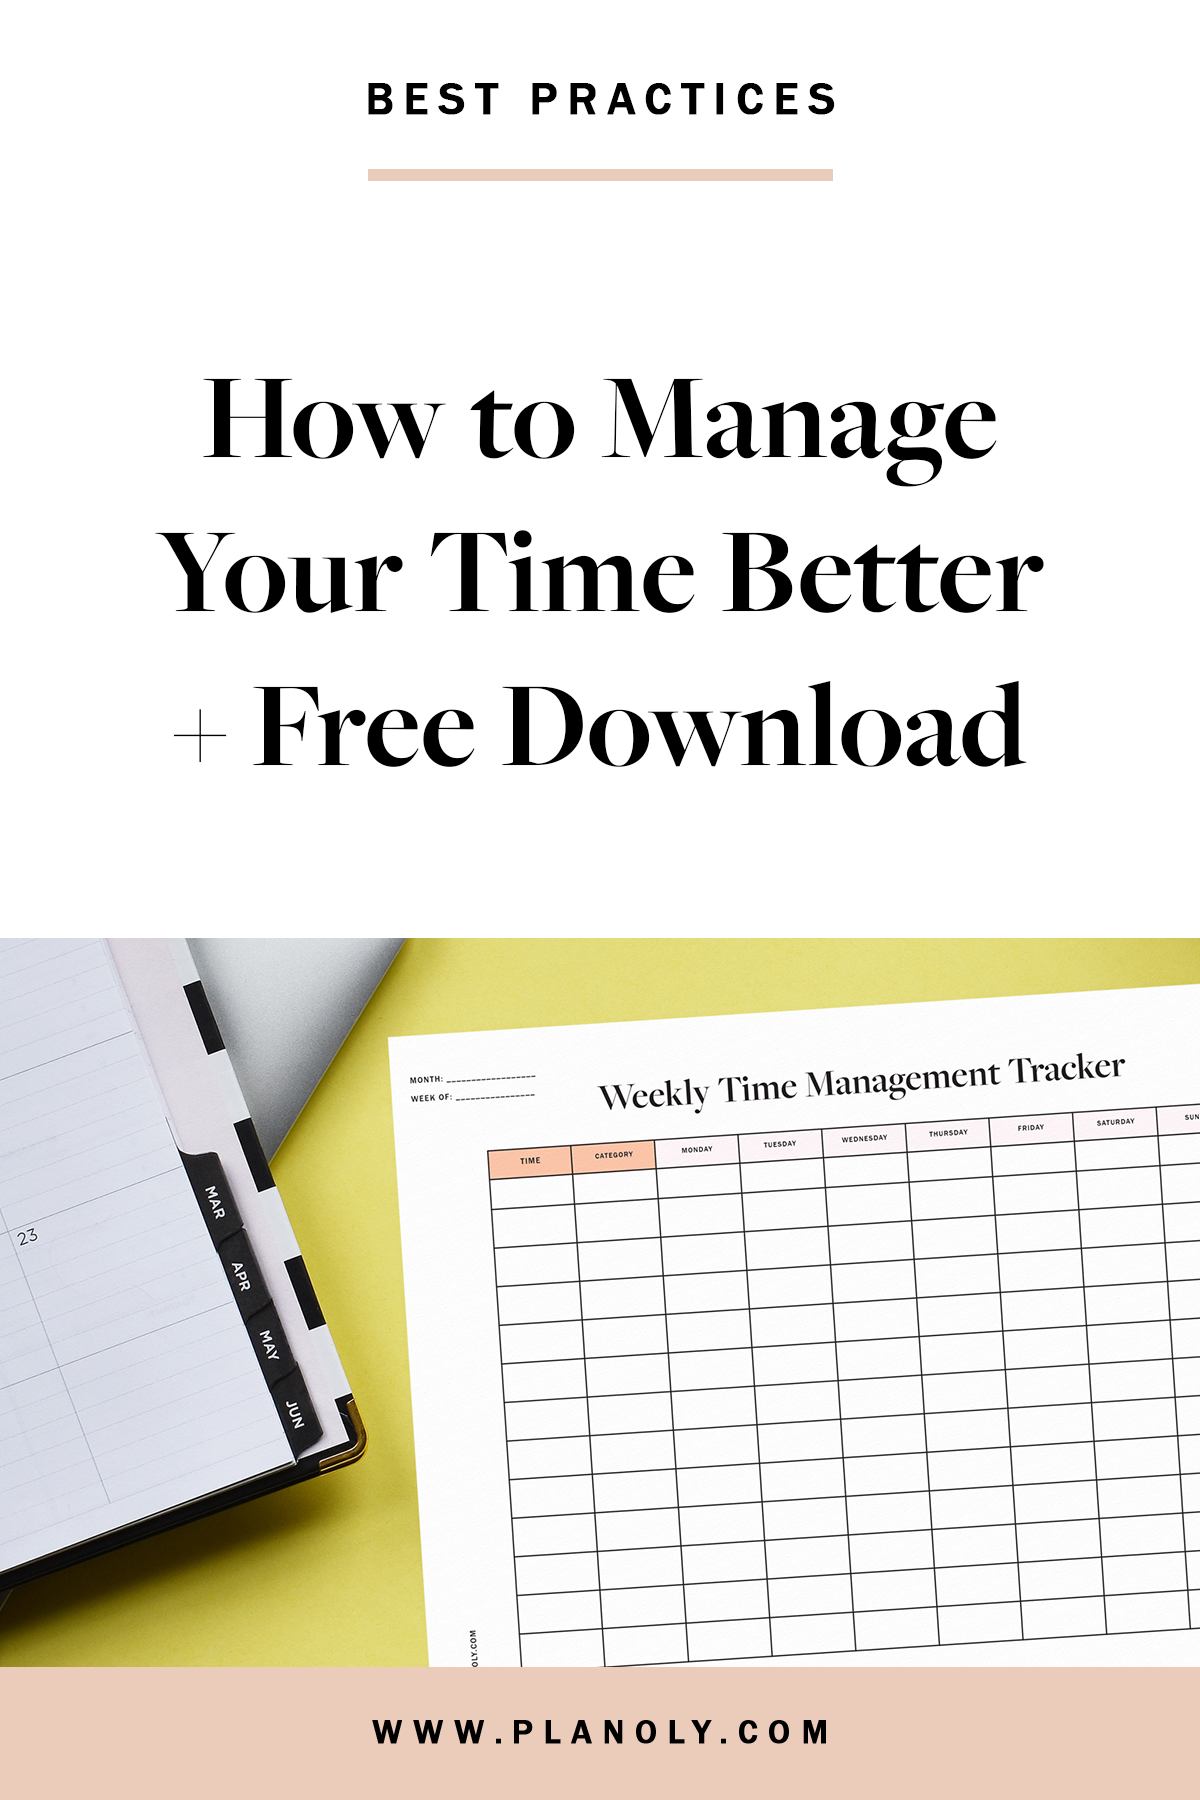 How To Manage Your Time Better